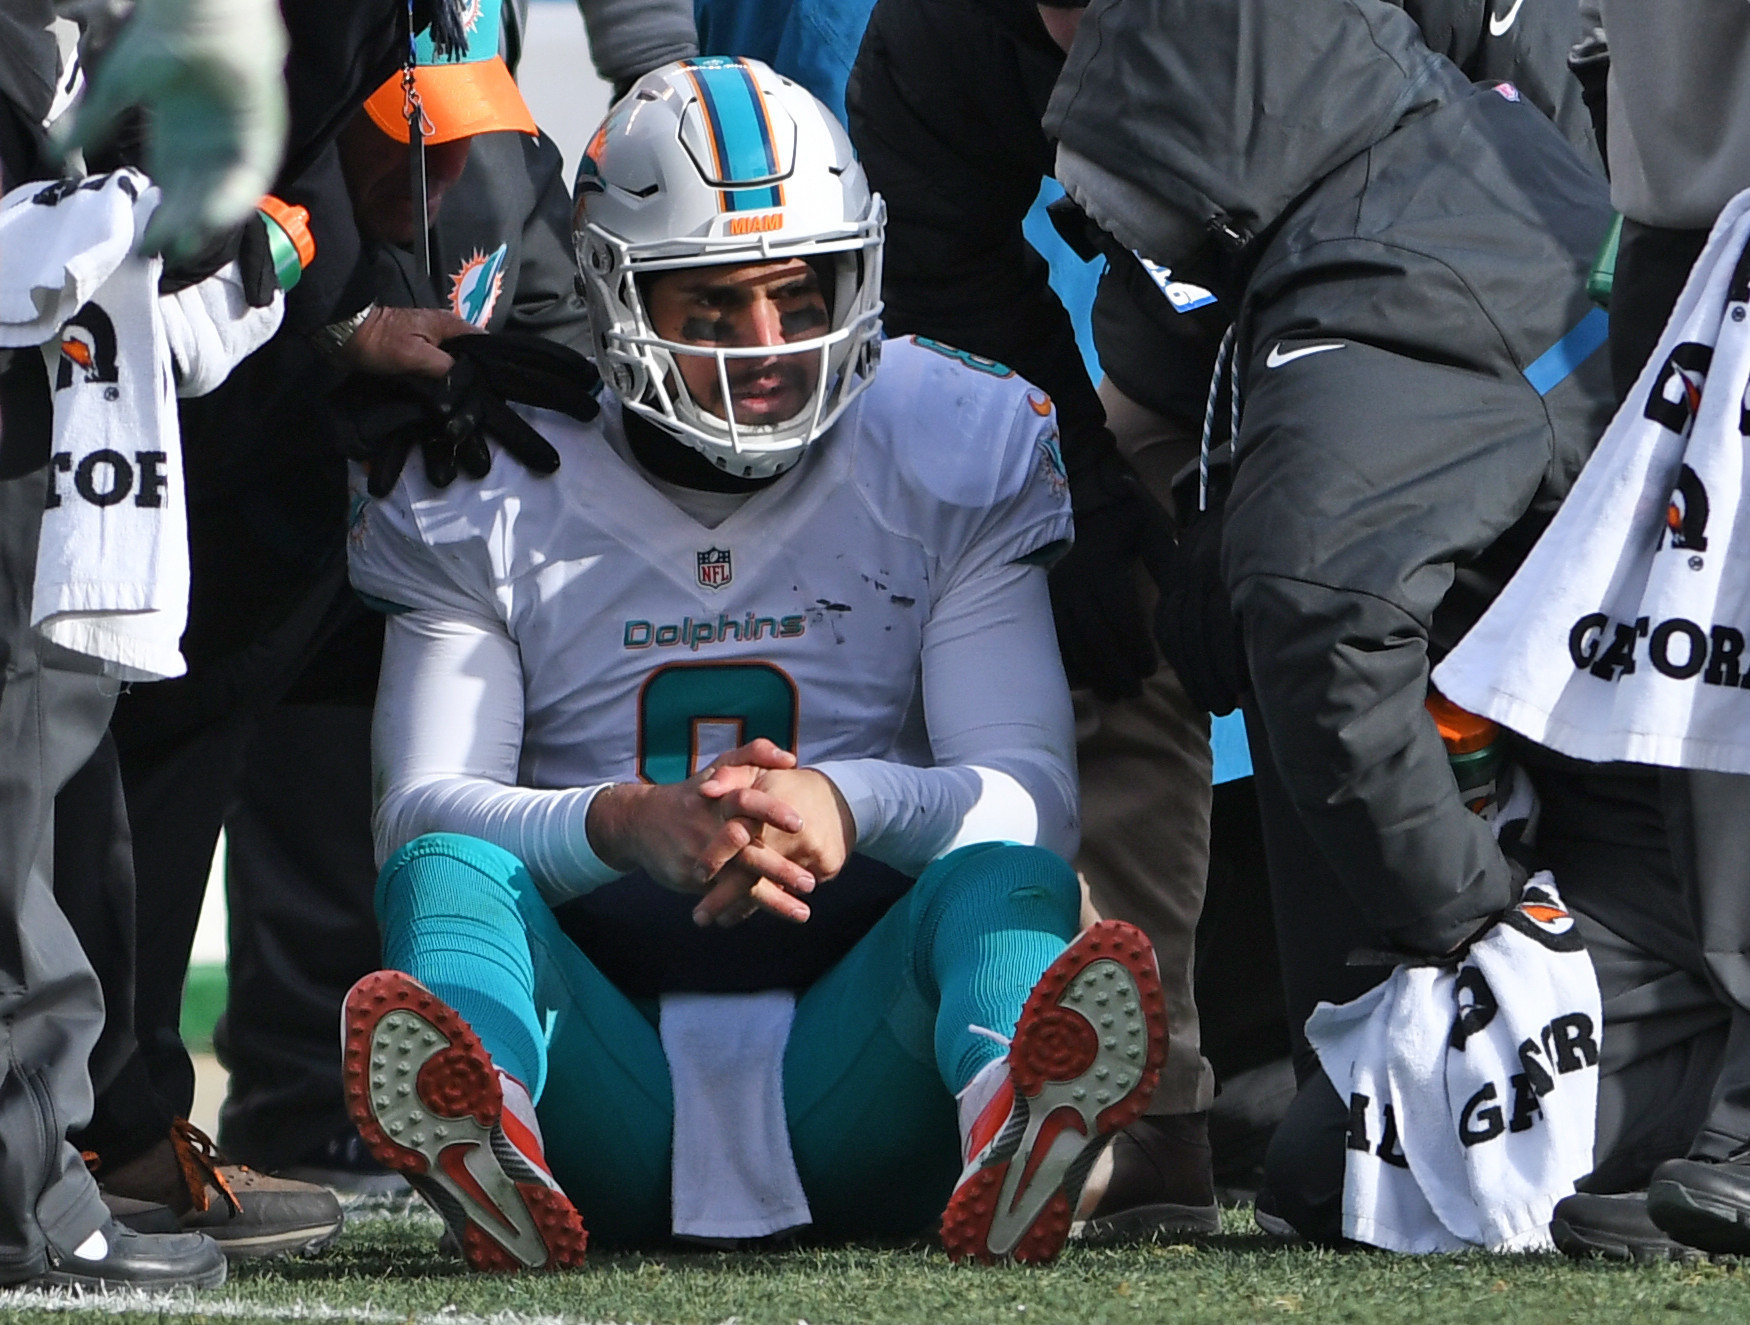 Dolphins issued warning regarding handling of concussion protocol for Matt Moore